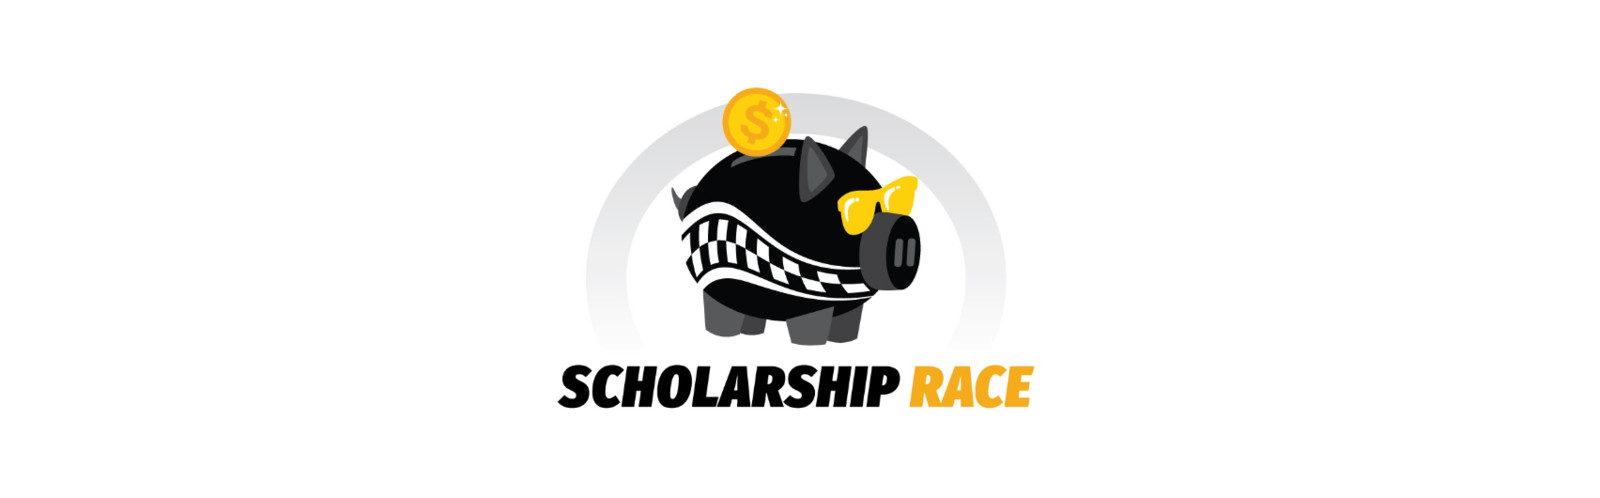 Community Support for Education Through Racing - Cash for Class Round 2 Information